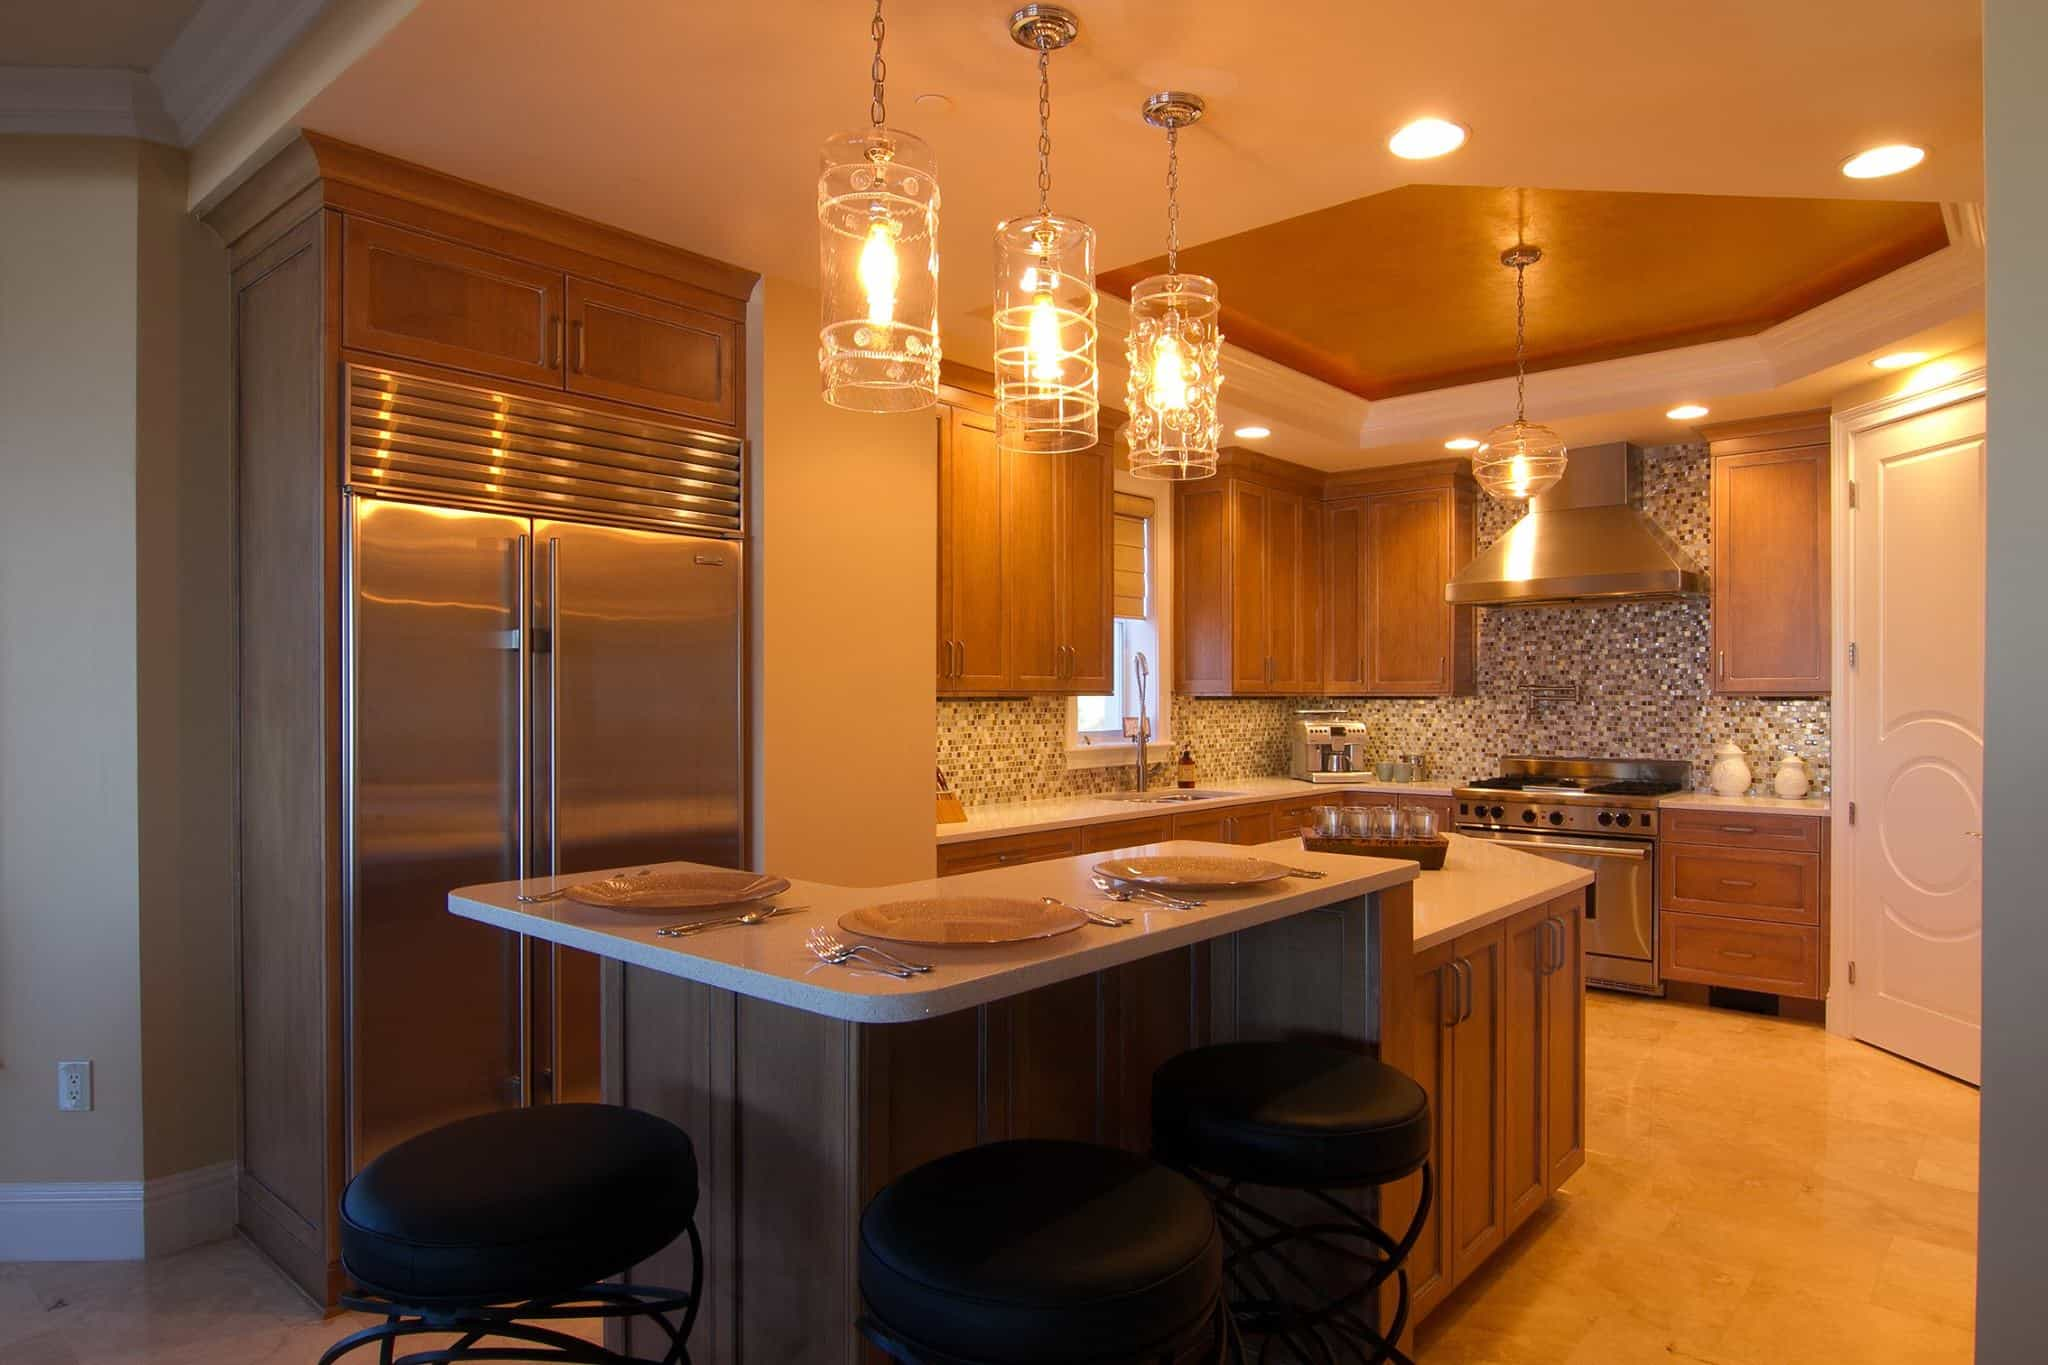 wooden kitchen cabinets with L-shaped island